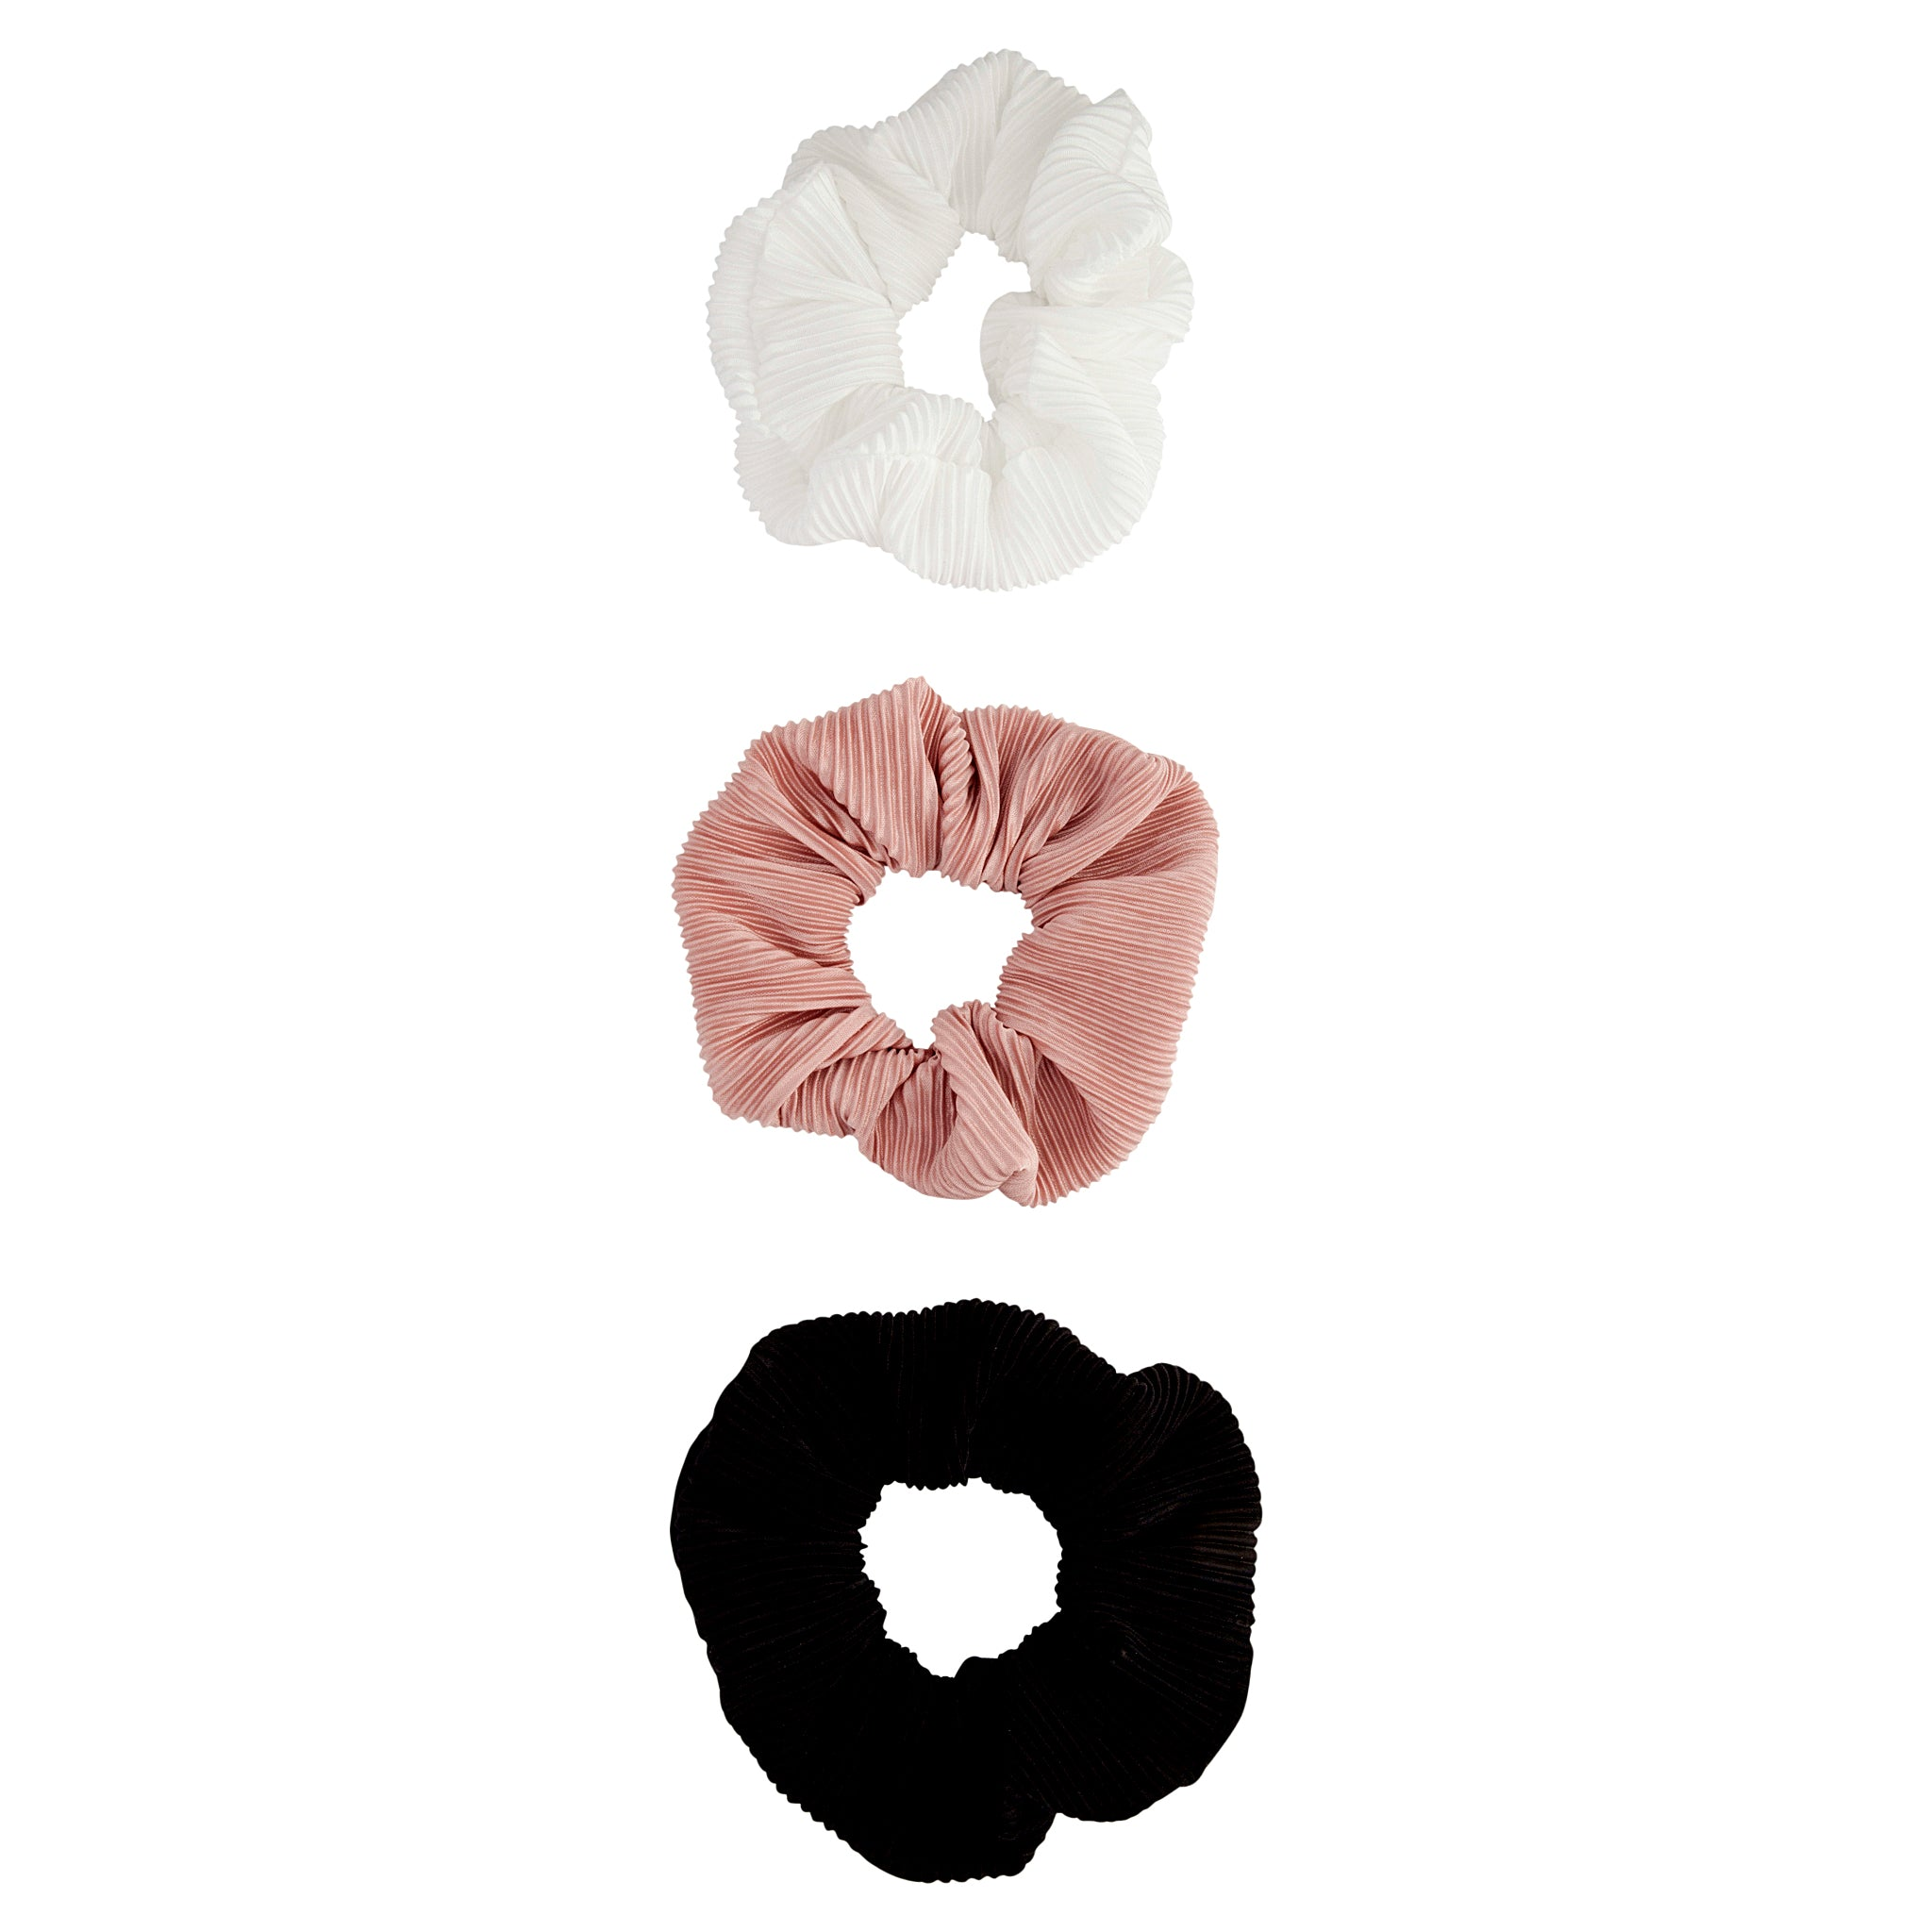 Plissí© Neutral Trio Scrunchie 3 Pack